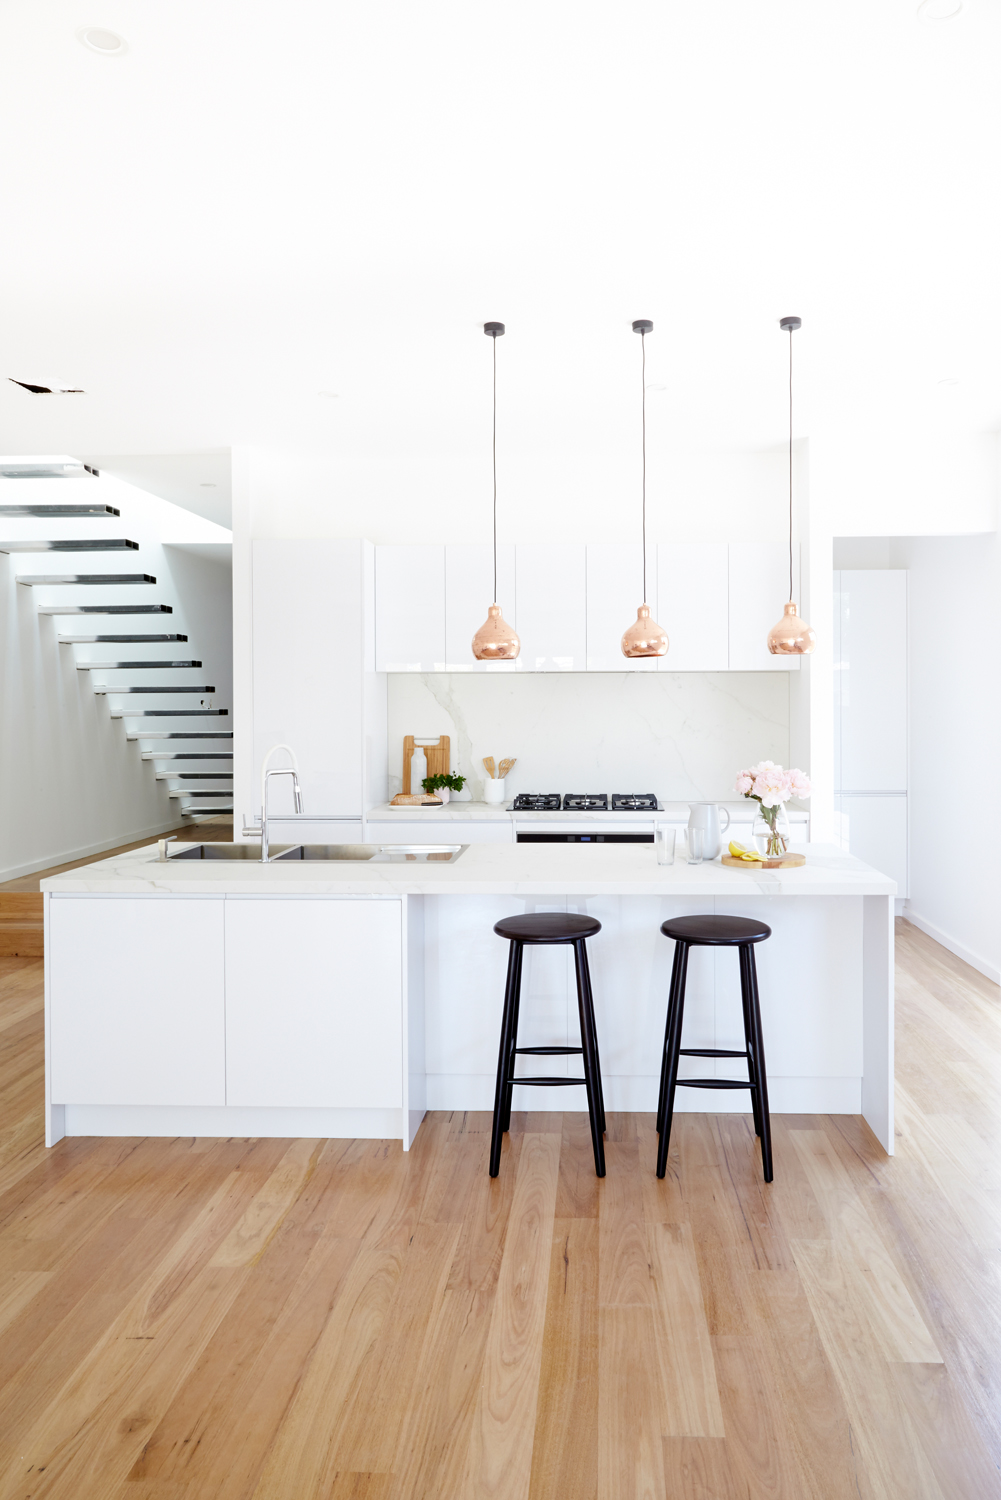 Freedom Furniture Kitchens Bec From The Block Skyhigh Talks Kitchen Design With Freedom